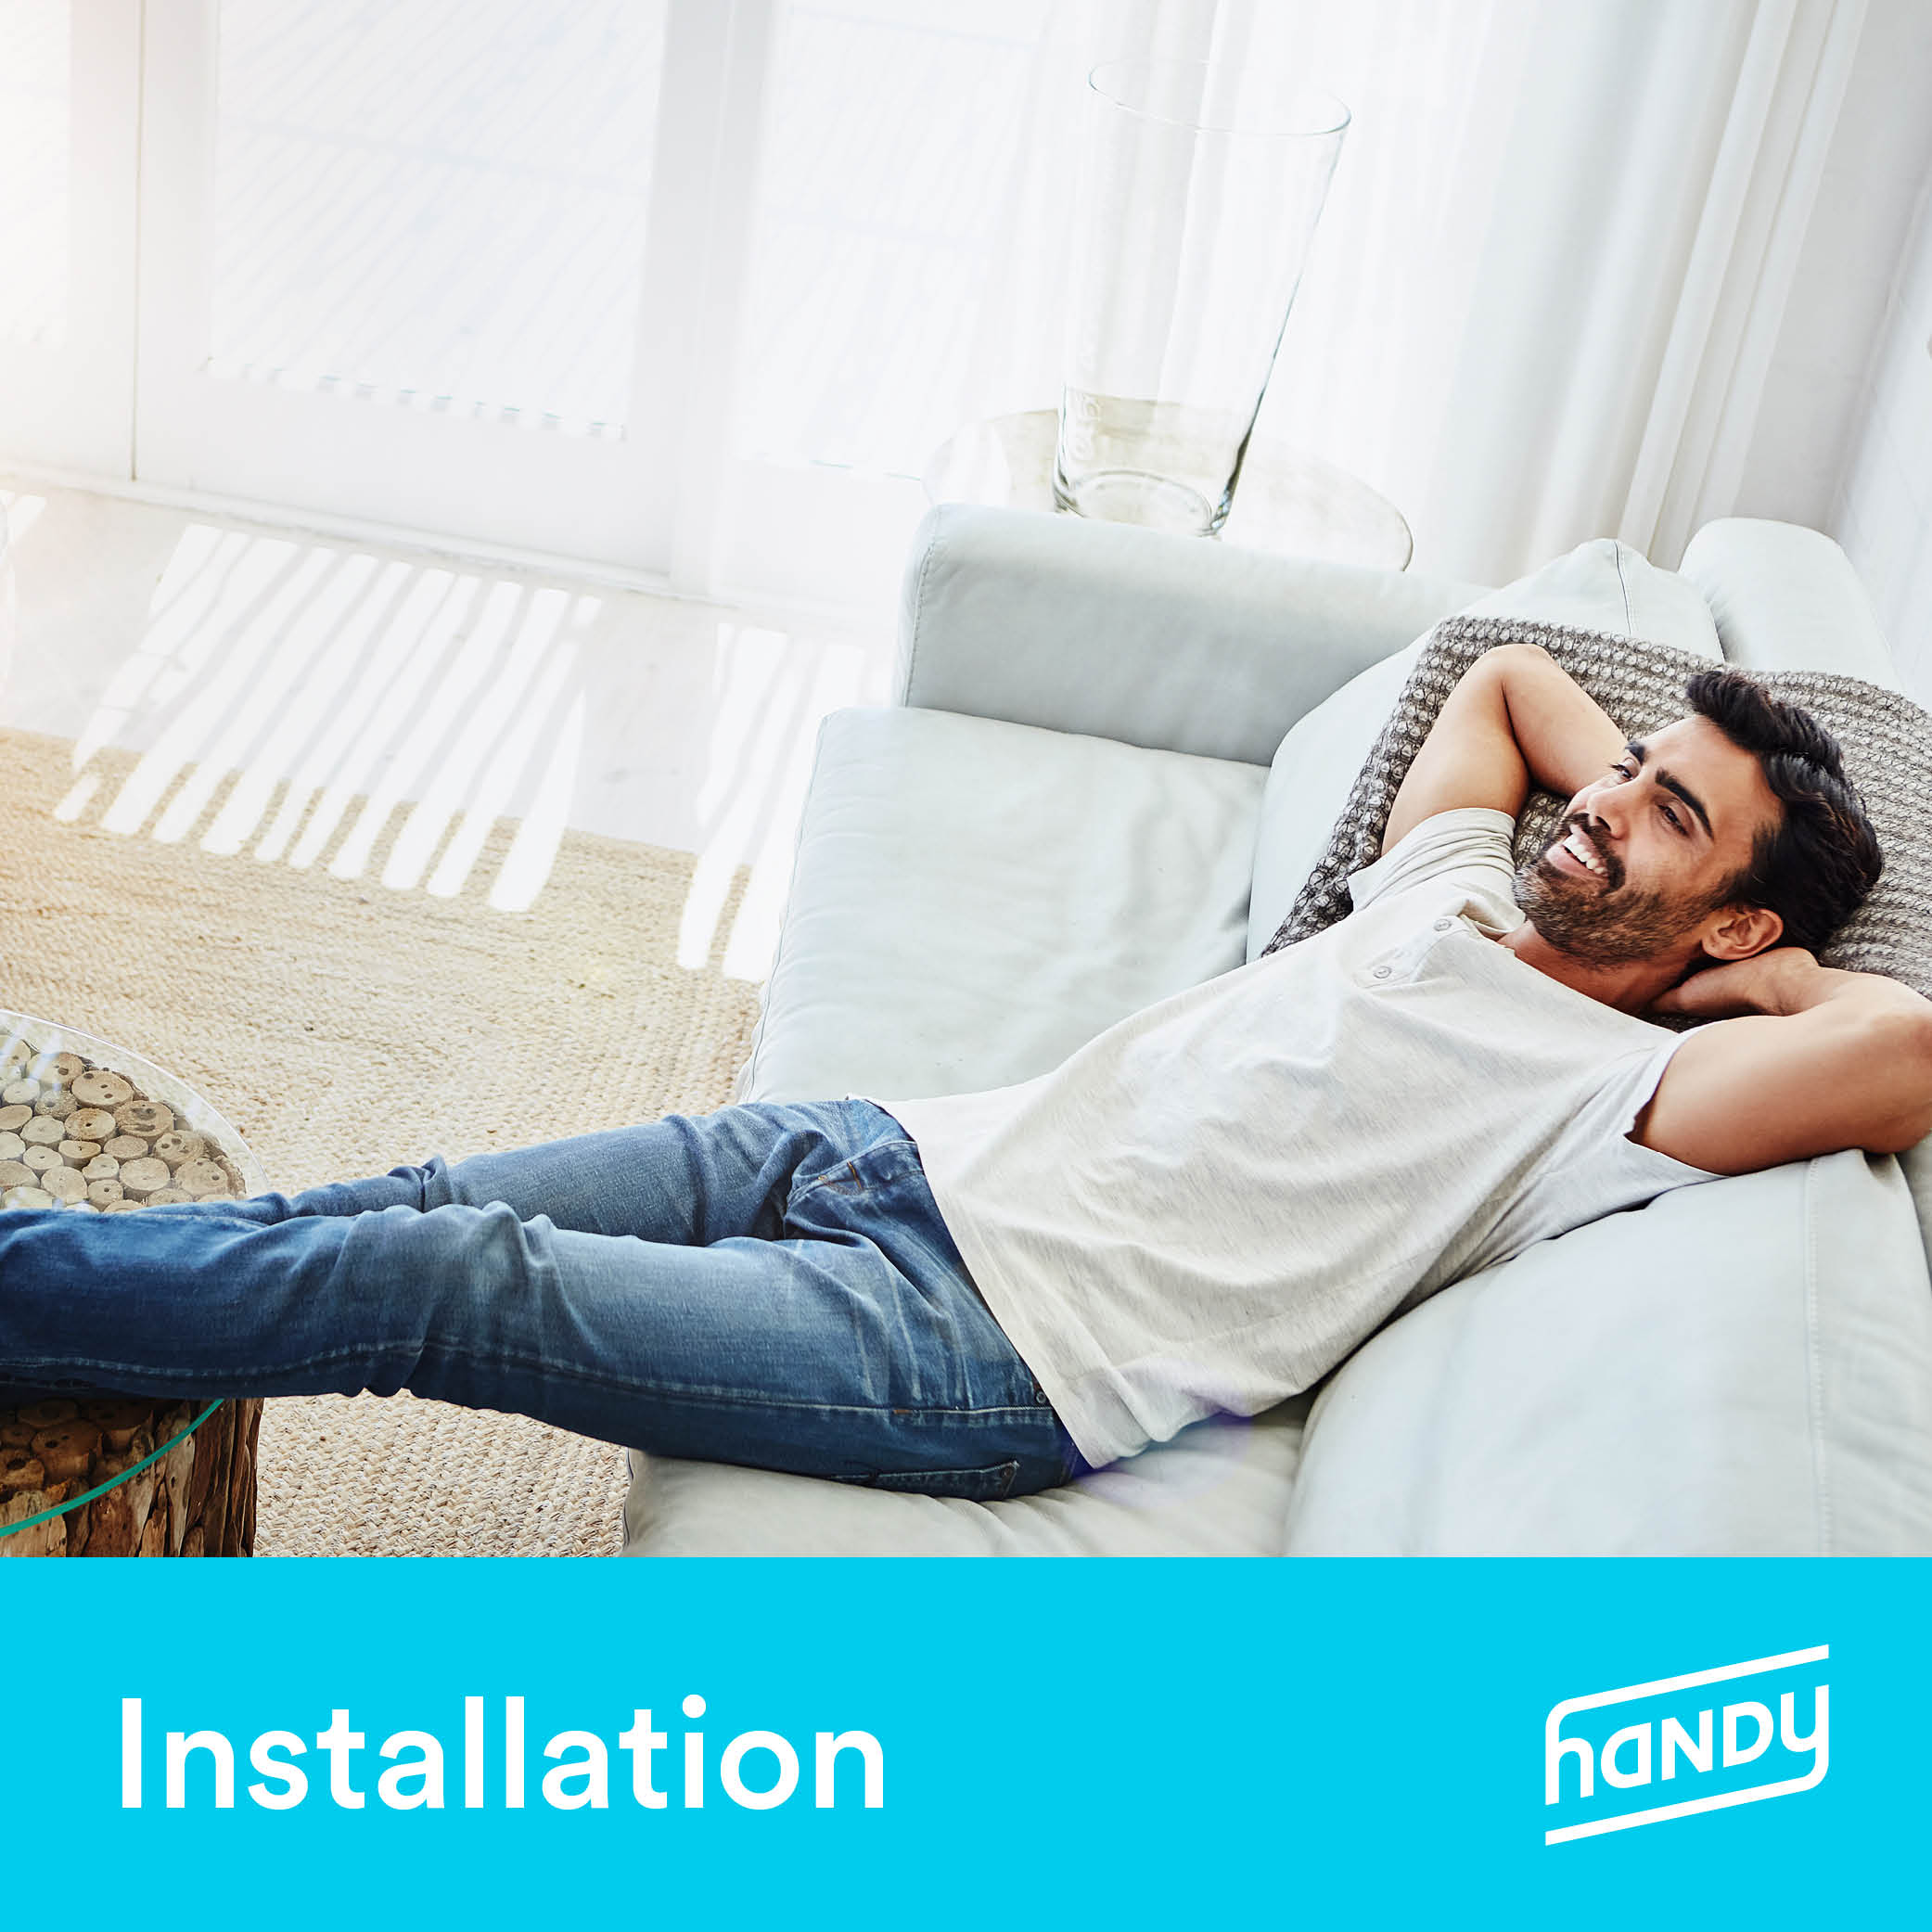 Window Air Conditioner Installation by Handy